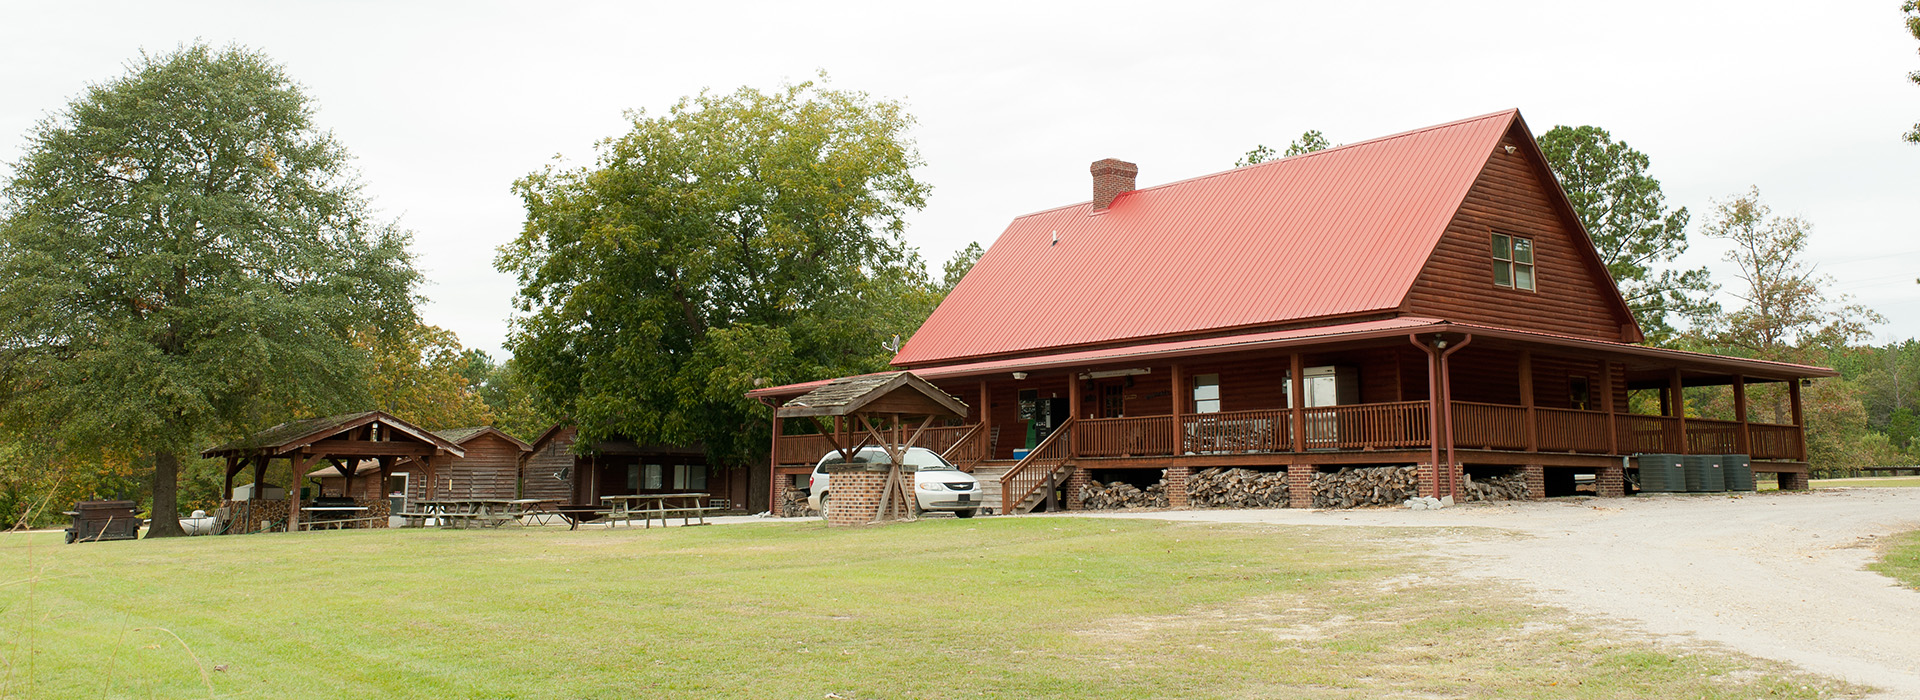 Moree's Sportsman's Preserve Clubhouse